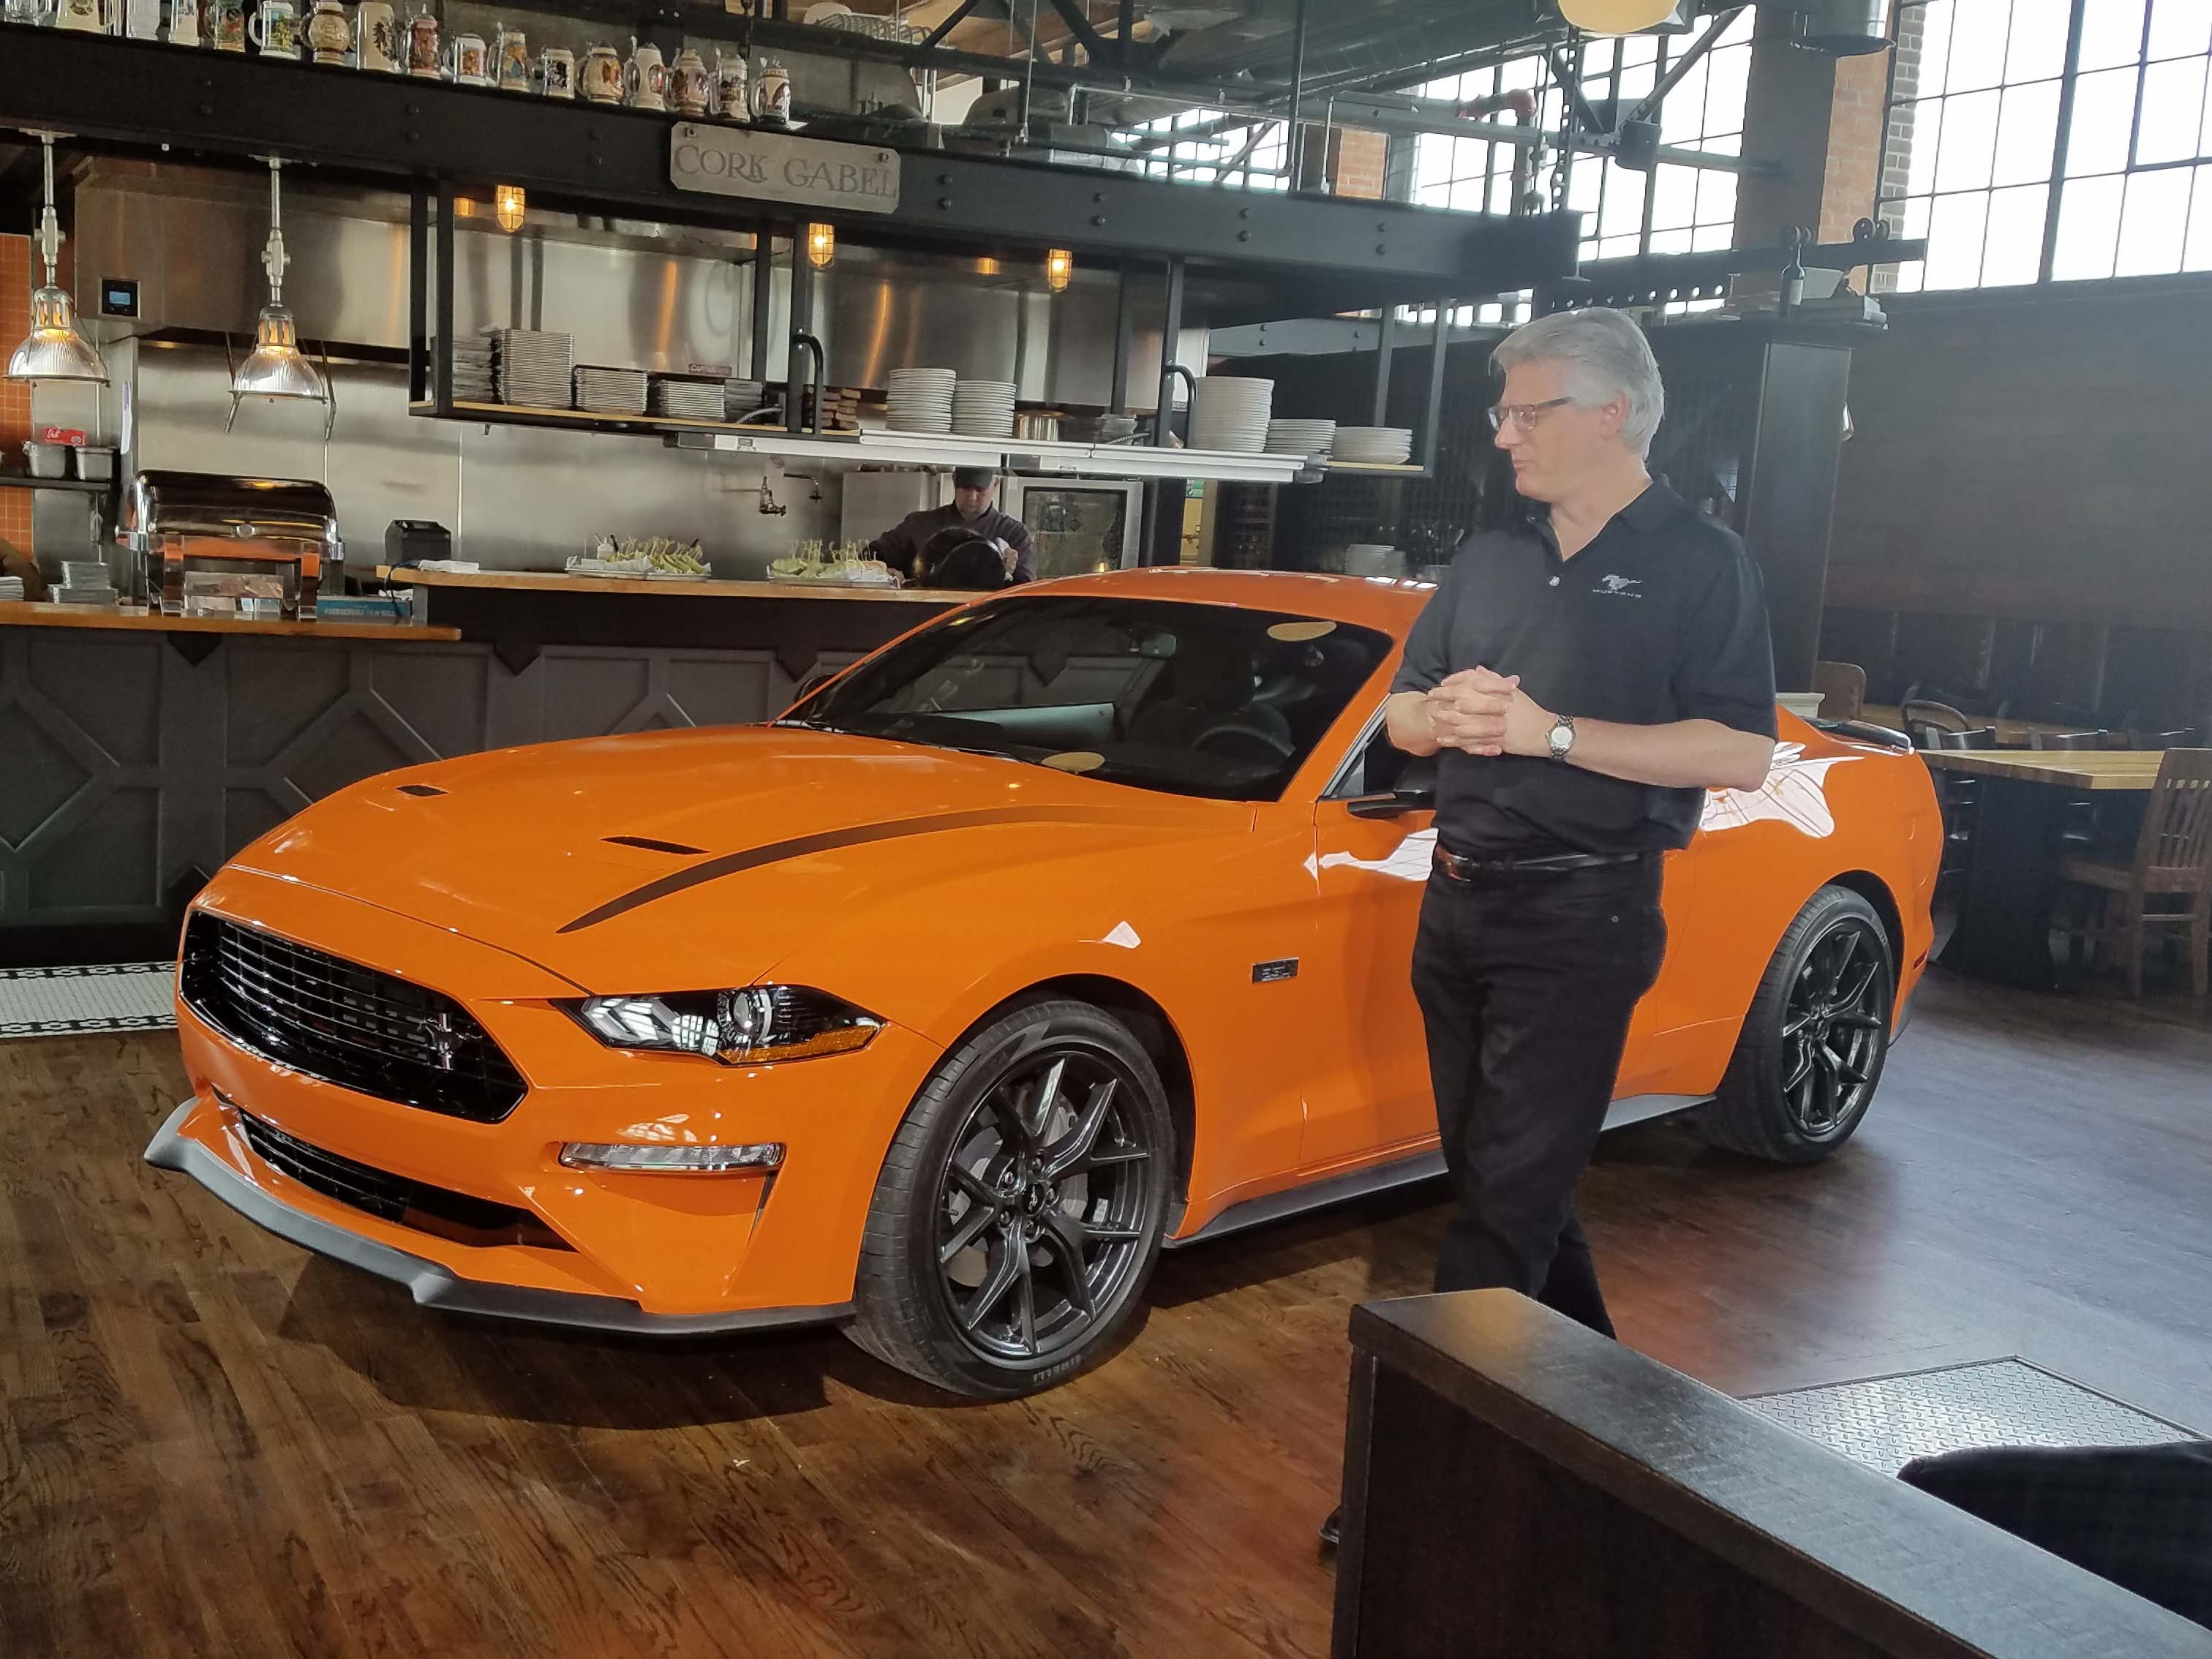 Ford Performance engineer Carl Widmann and his team cooked up the Ford Mustang Ecoboost High Performance in a year — using tools like the retired Focus RS's turbo-4, big brakes, limited-slip differential, and tighter suspension.